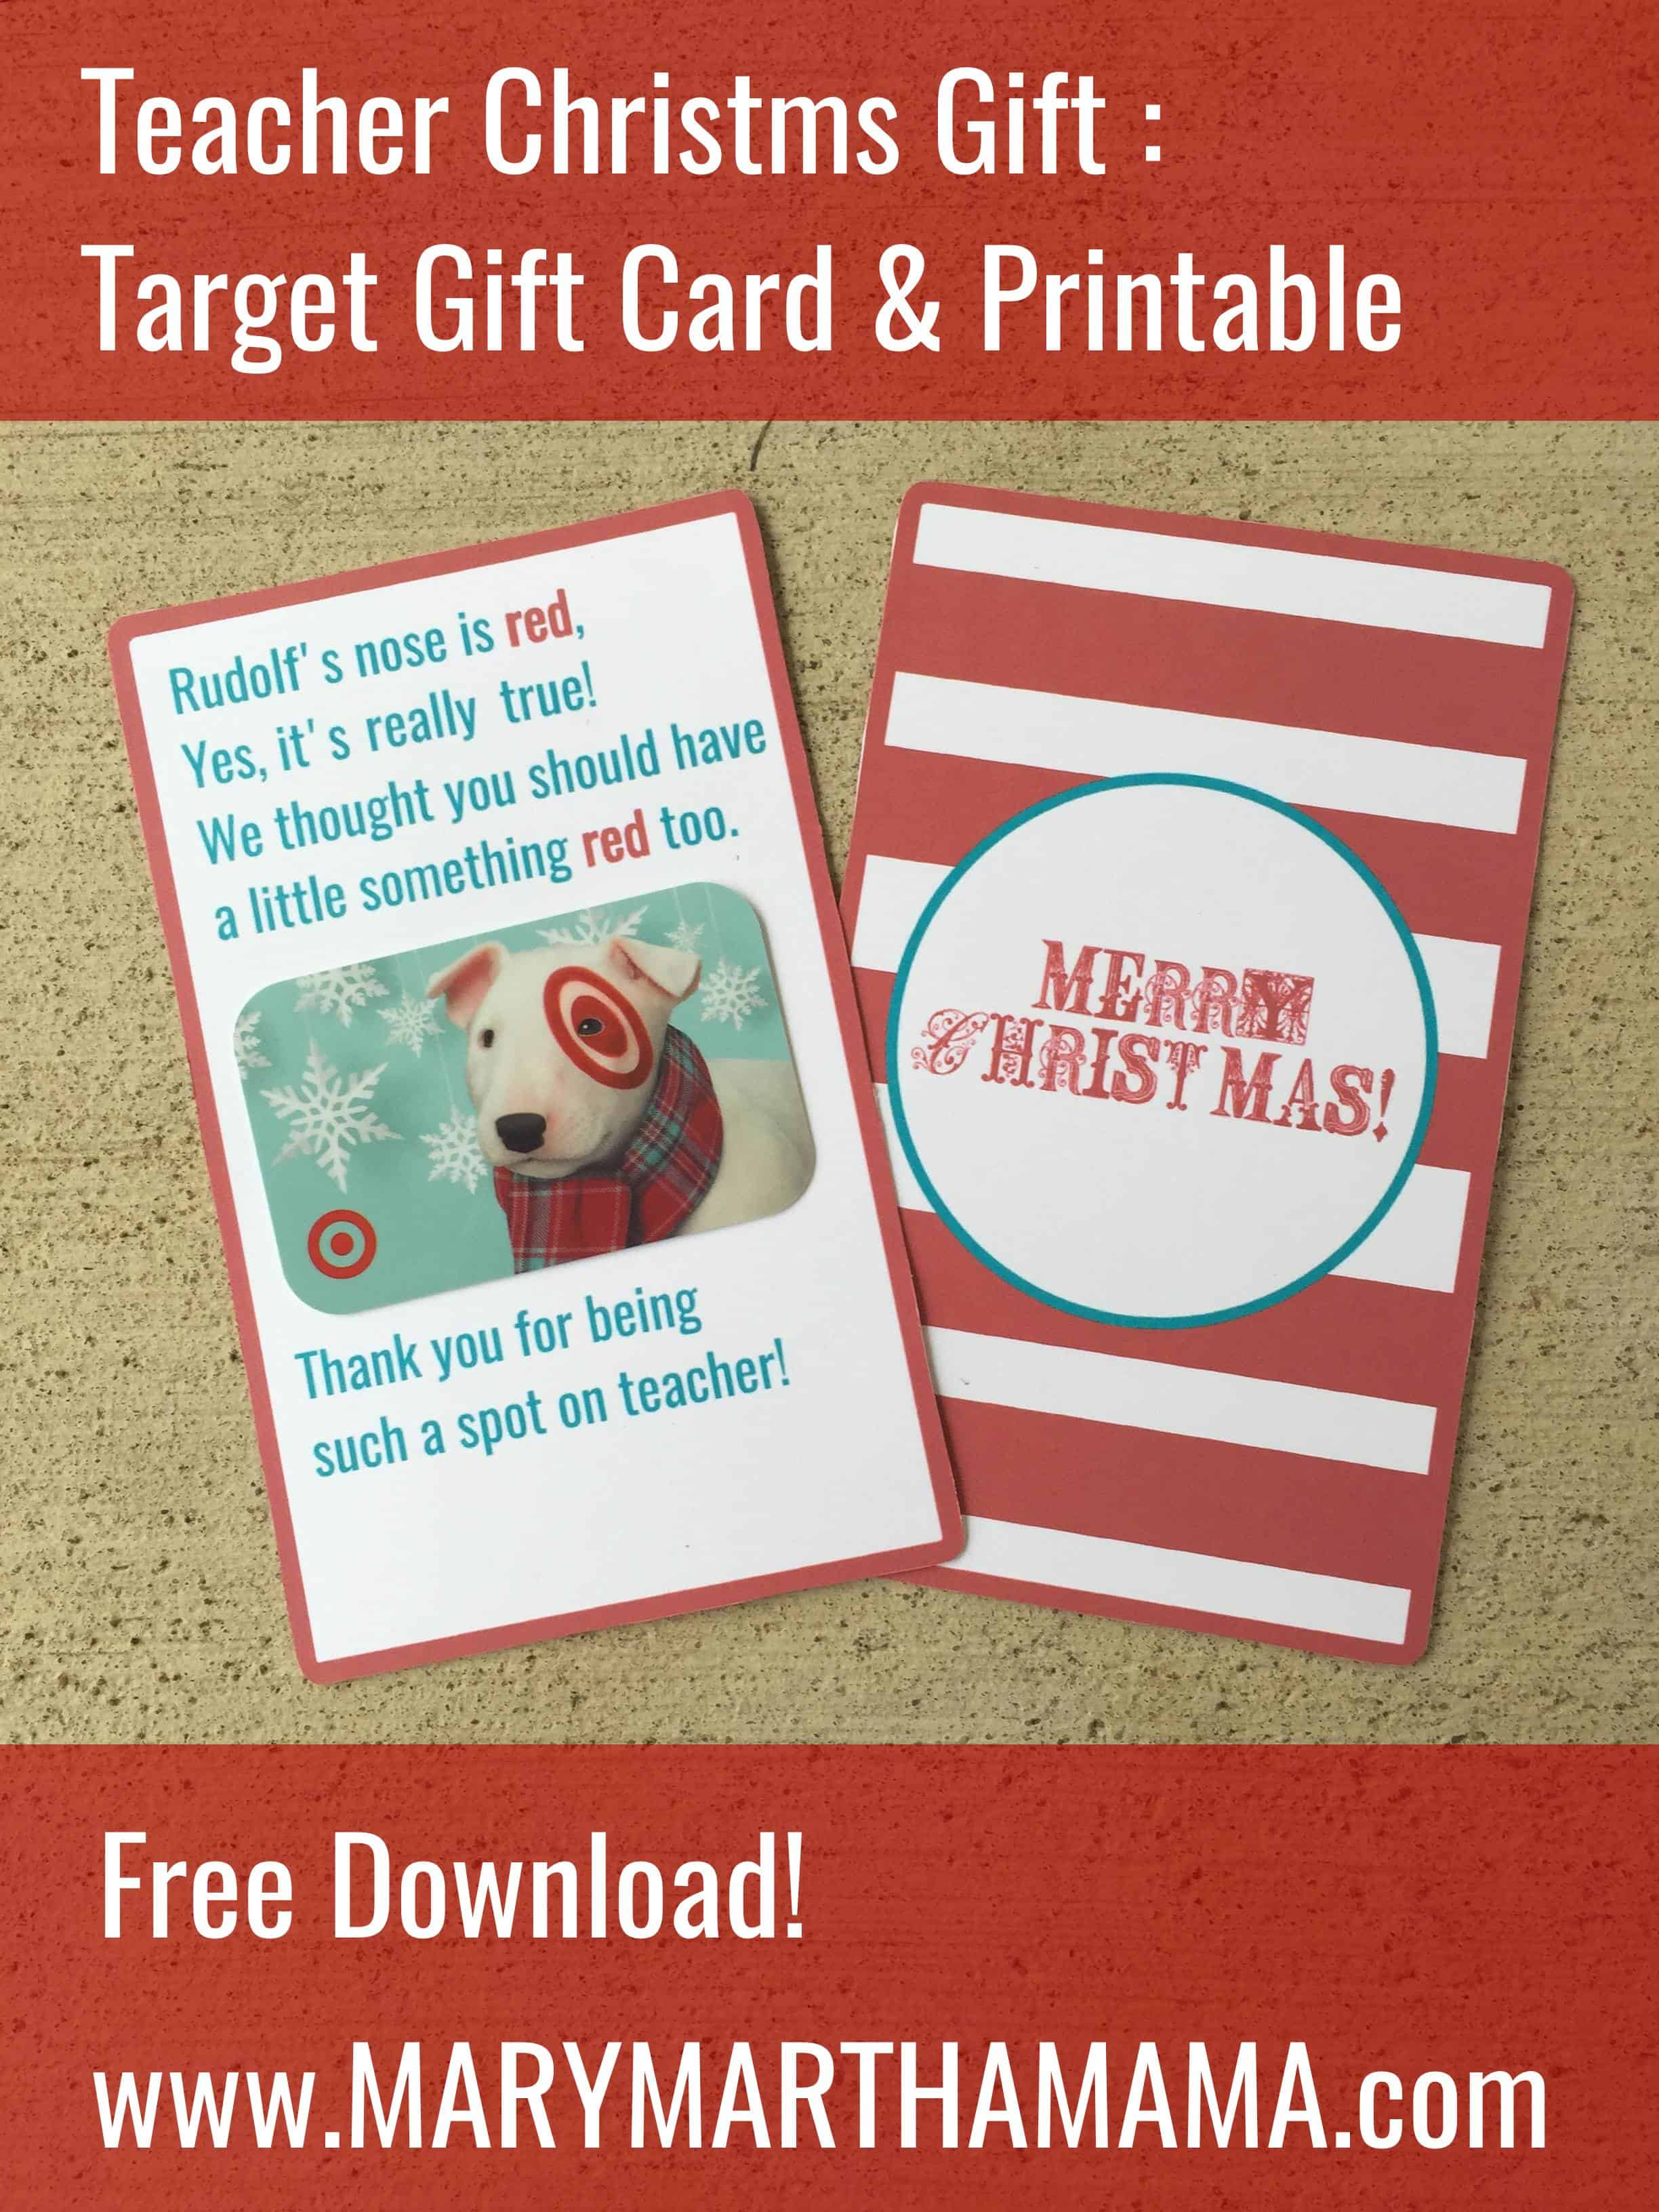 Teacher Christmas Gift: Target Gift Card Printable – Mary Martha Mama